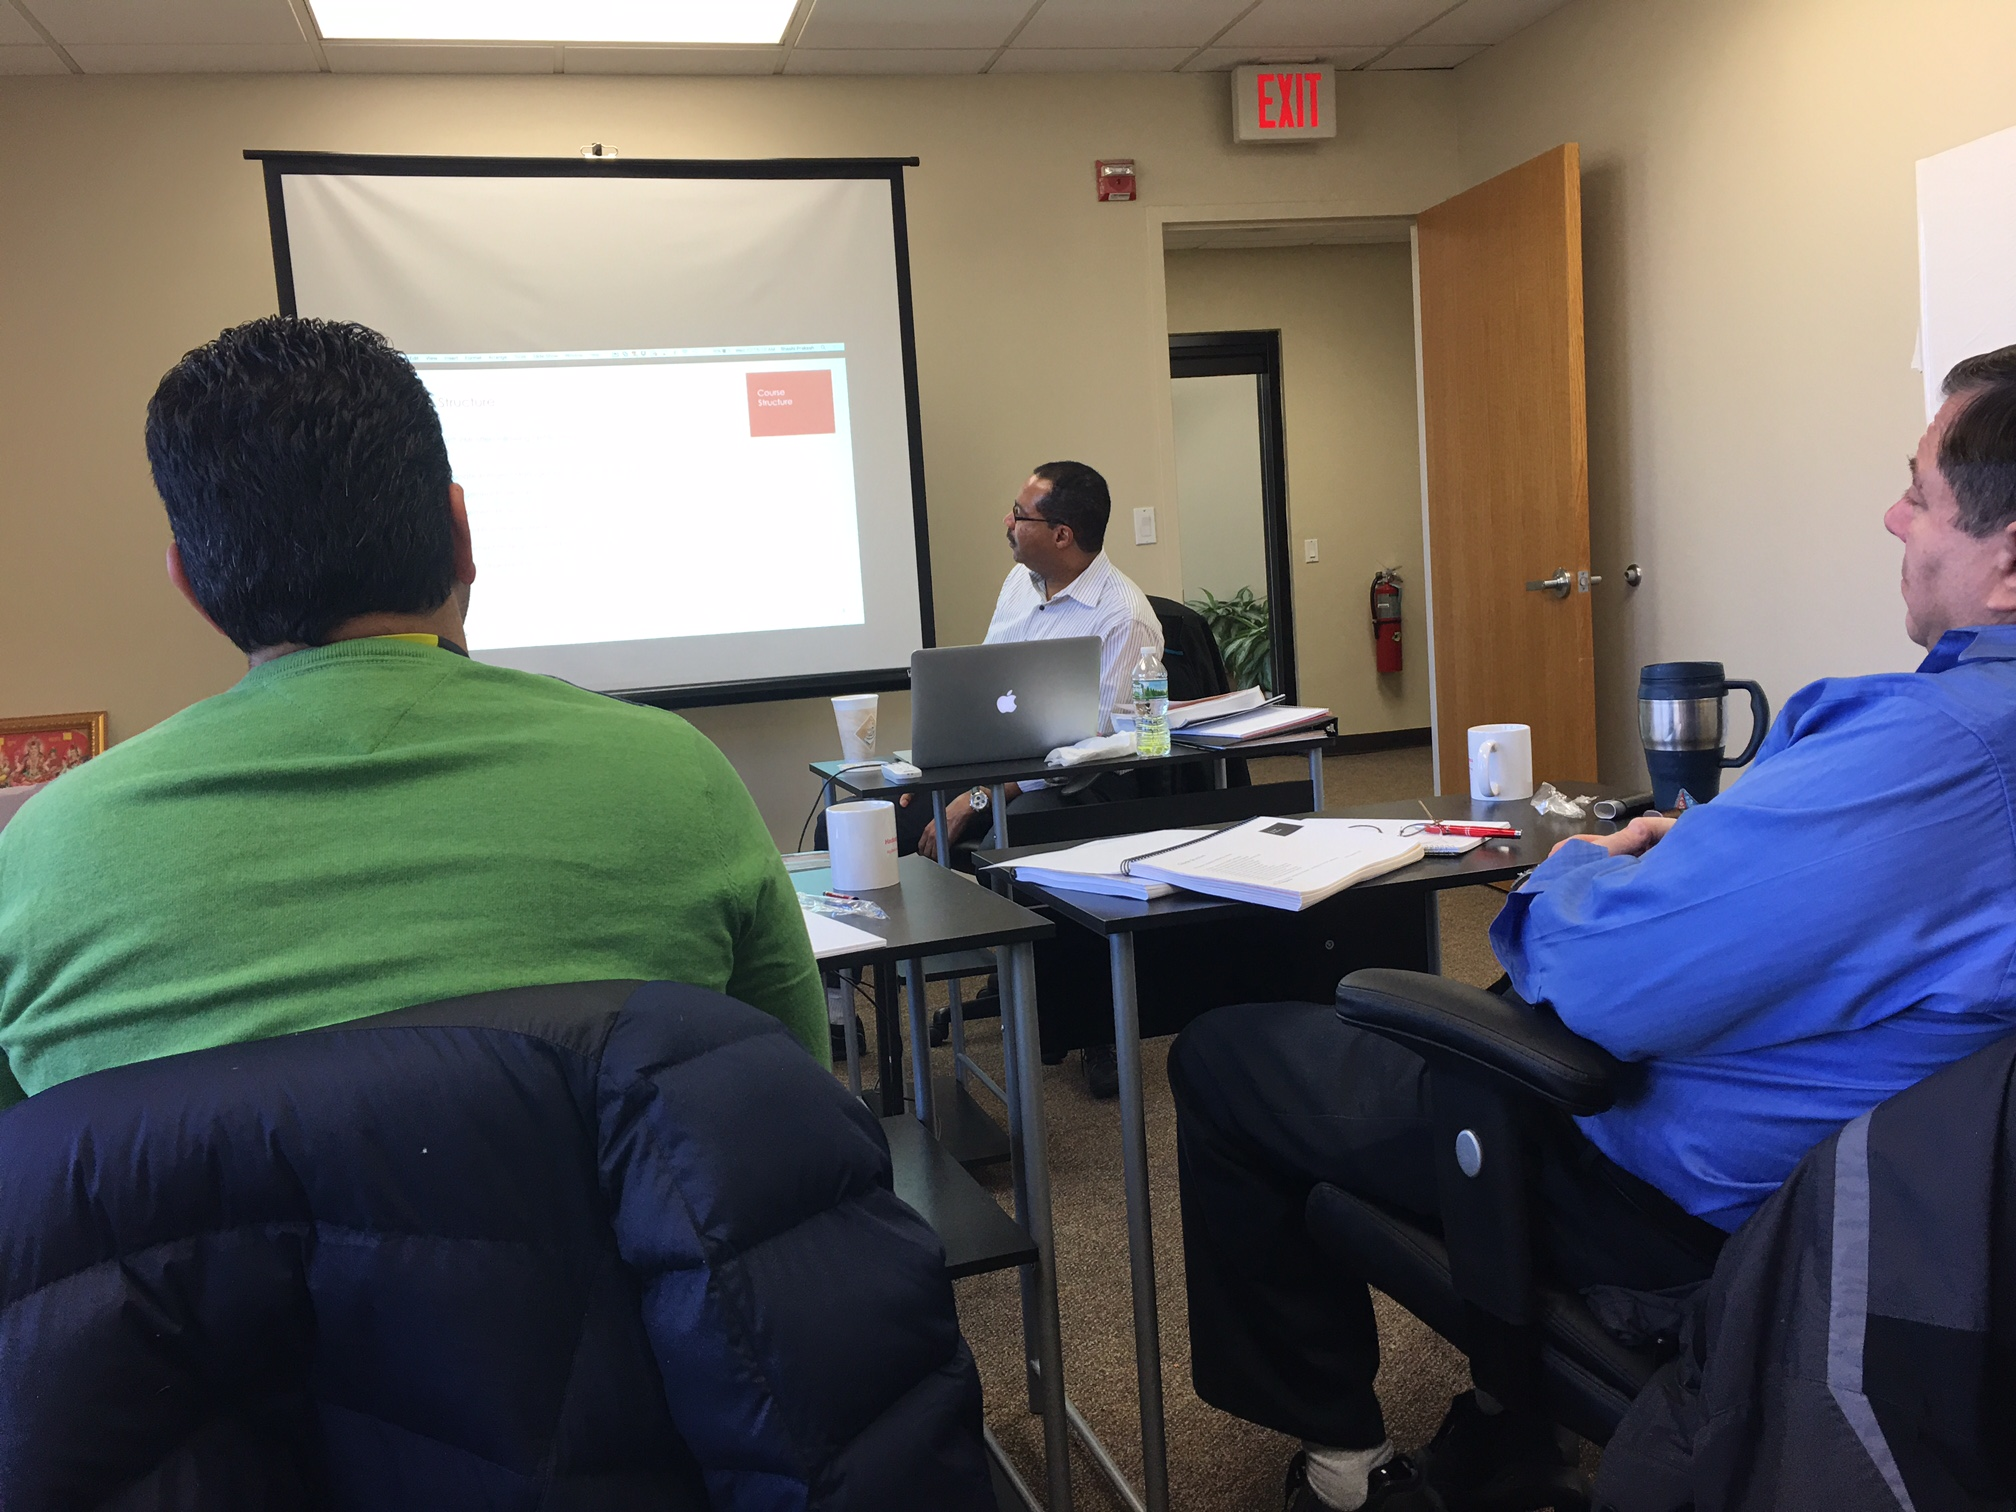 Learning - Big Data Class at Hadoop express, Parsippany New Jersey